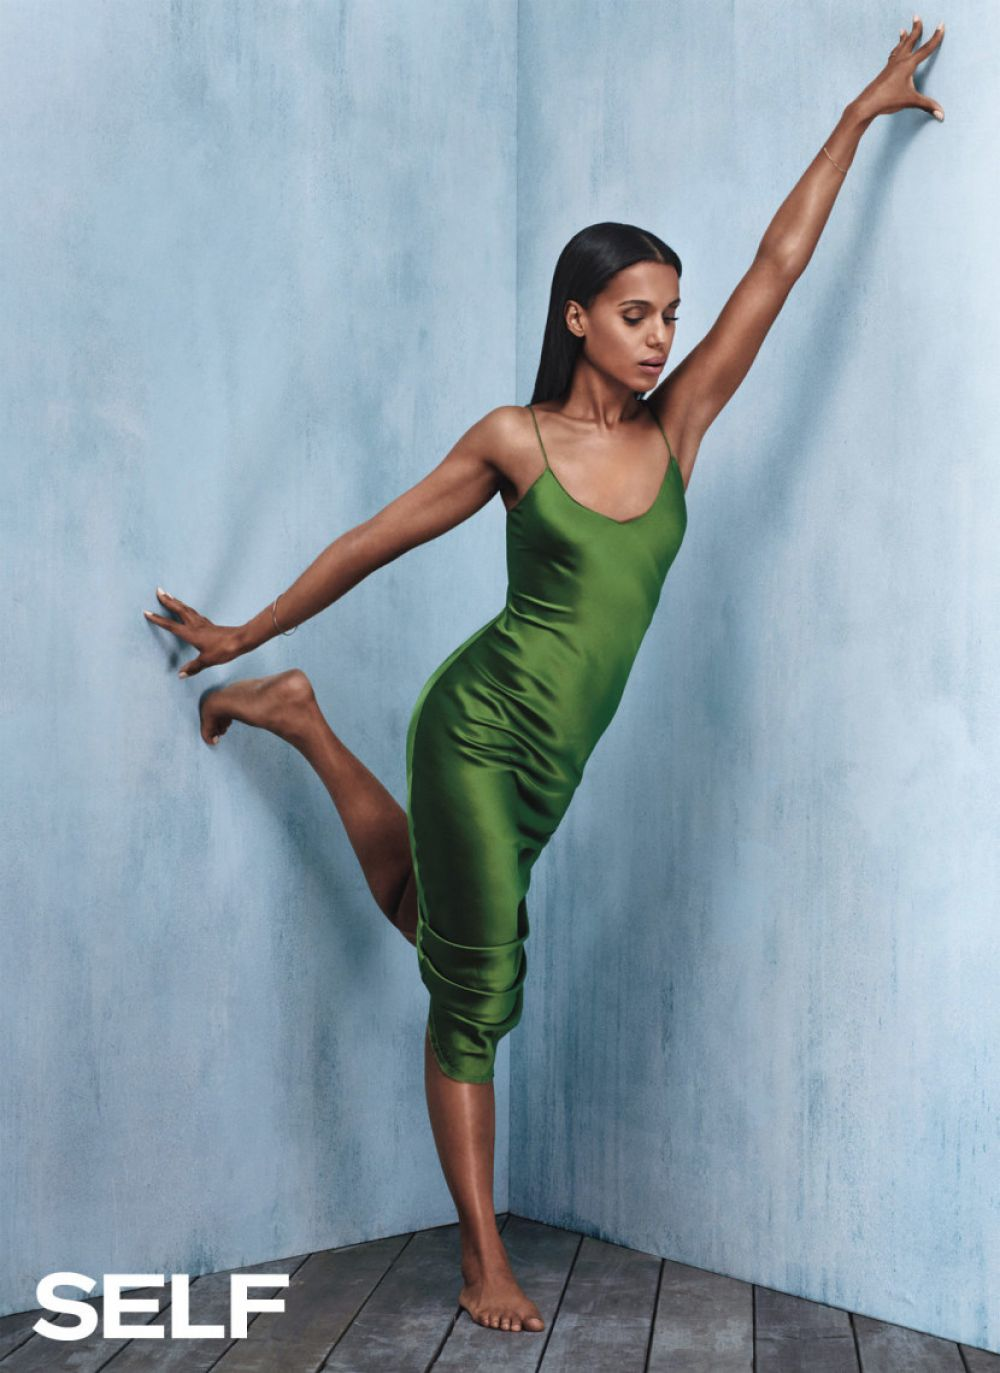 kerry-washington-in-self-magazine-september-2015-issue_2